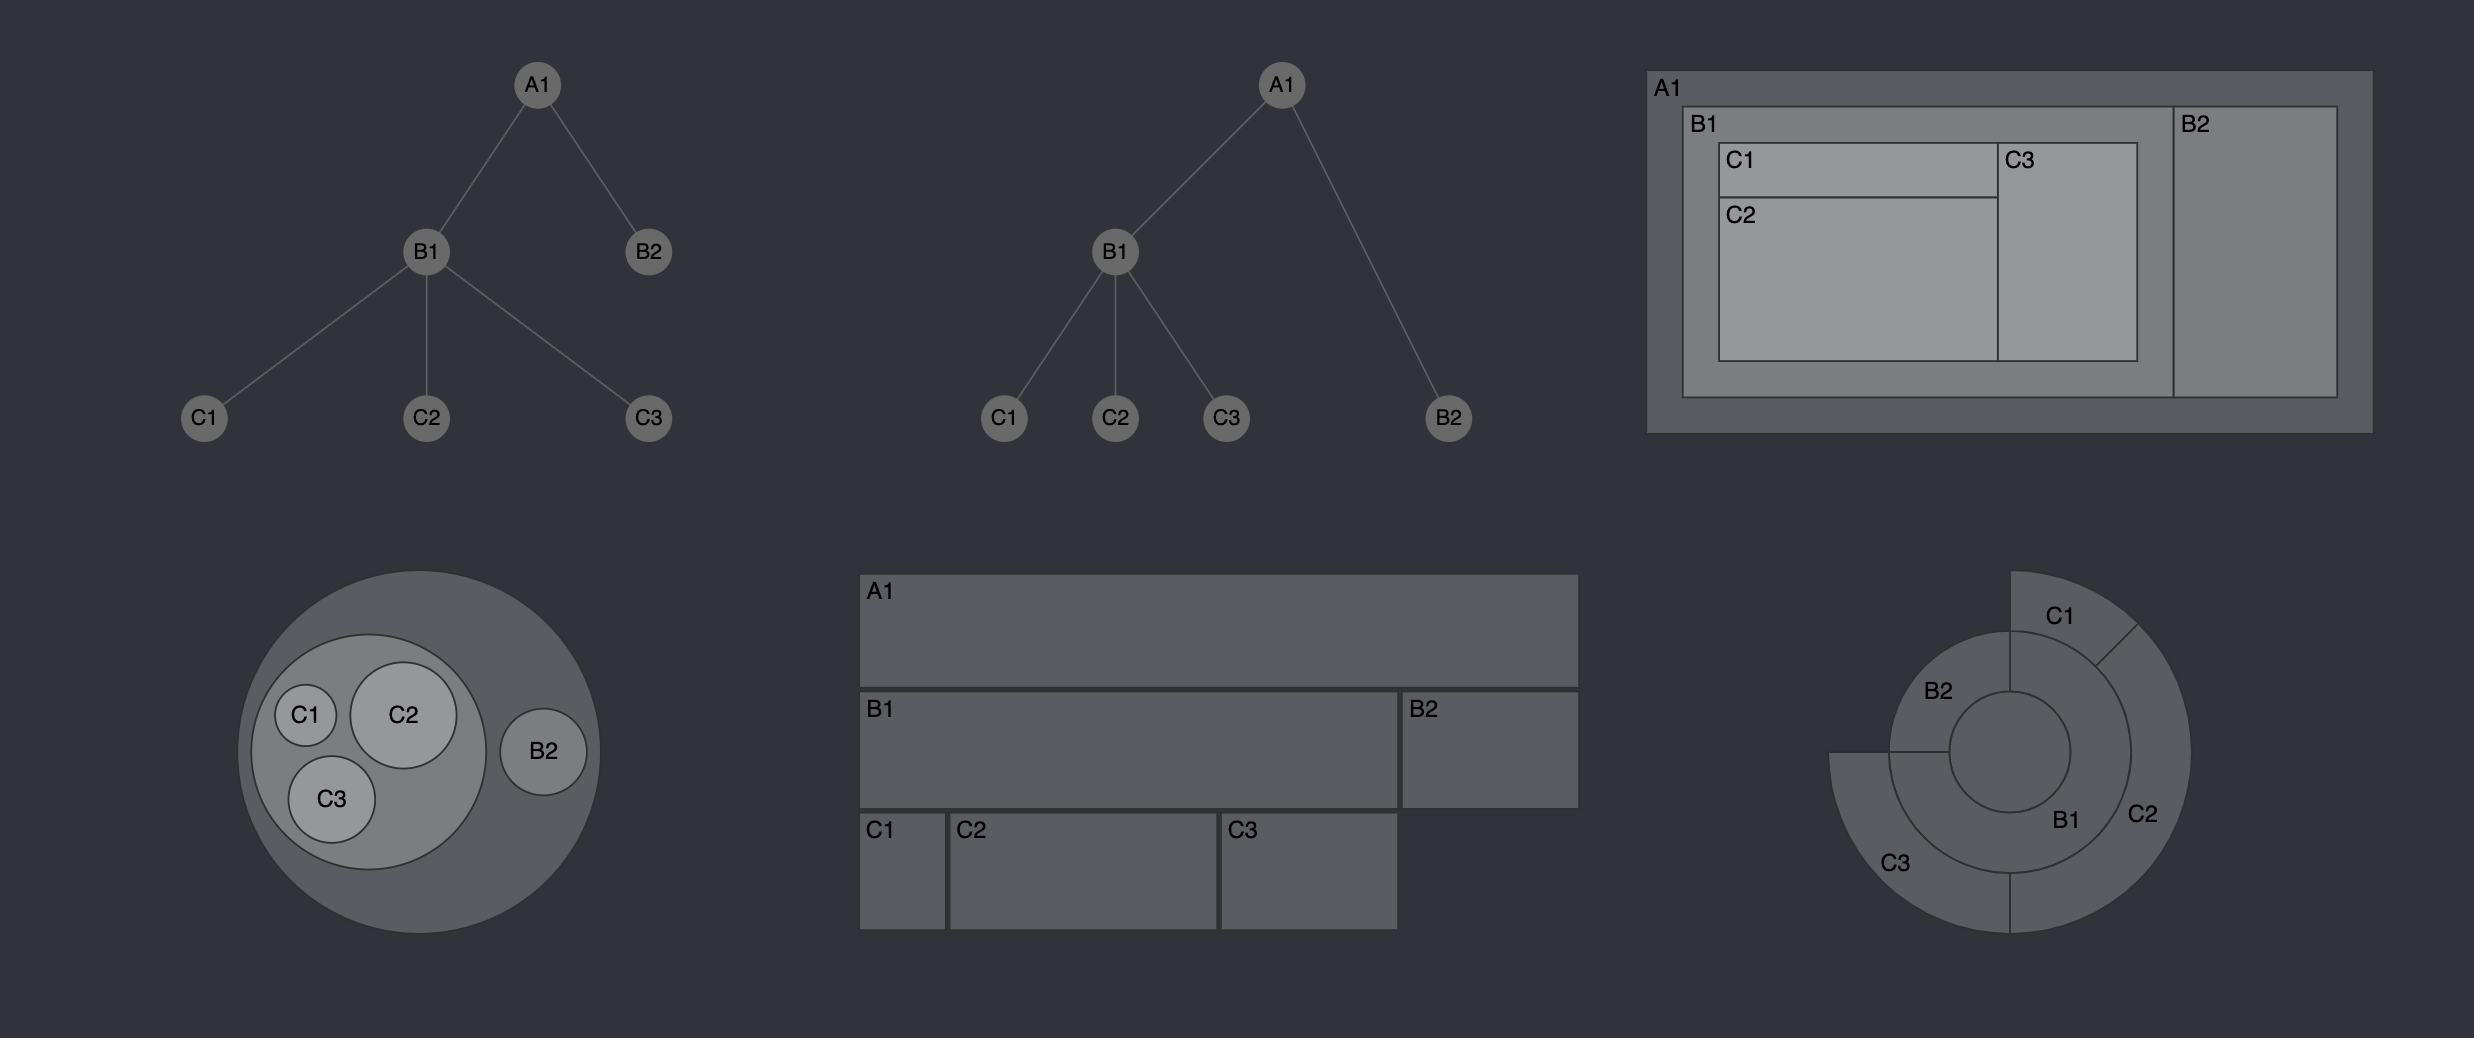 Making hierarchy layouts with D3 js - Nightingale - Medium